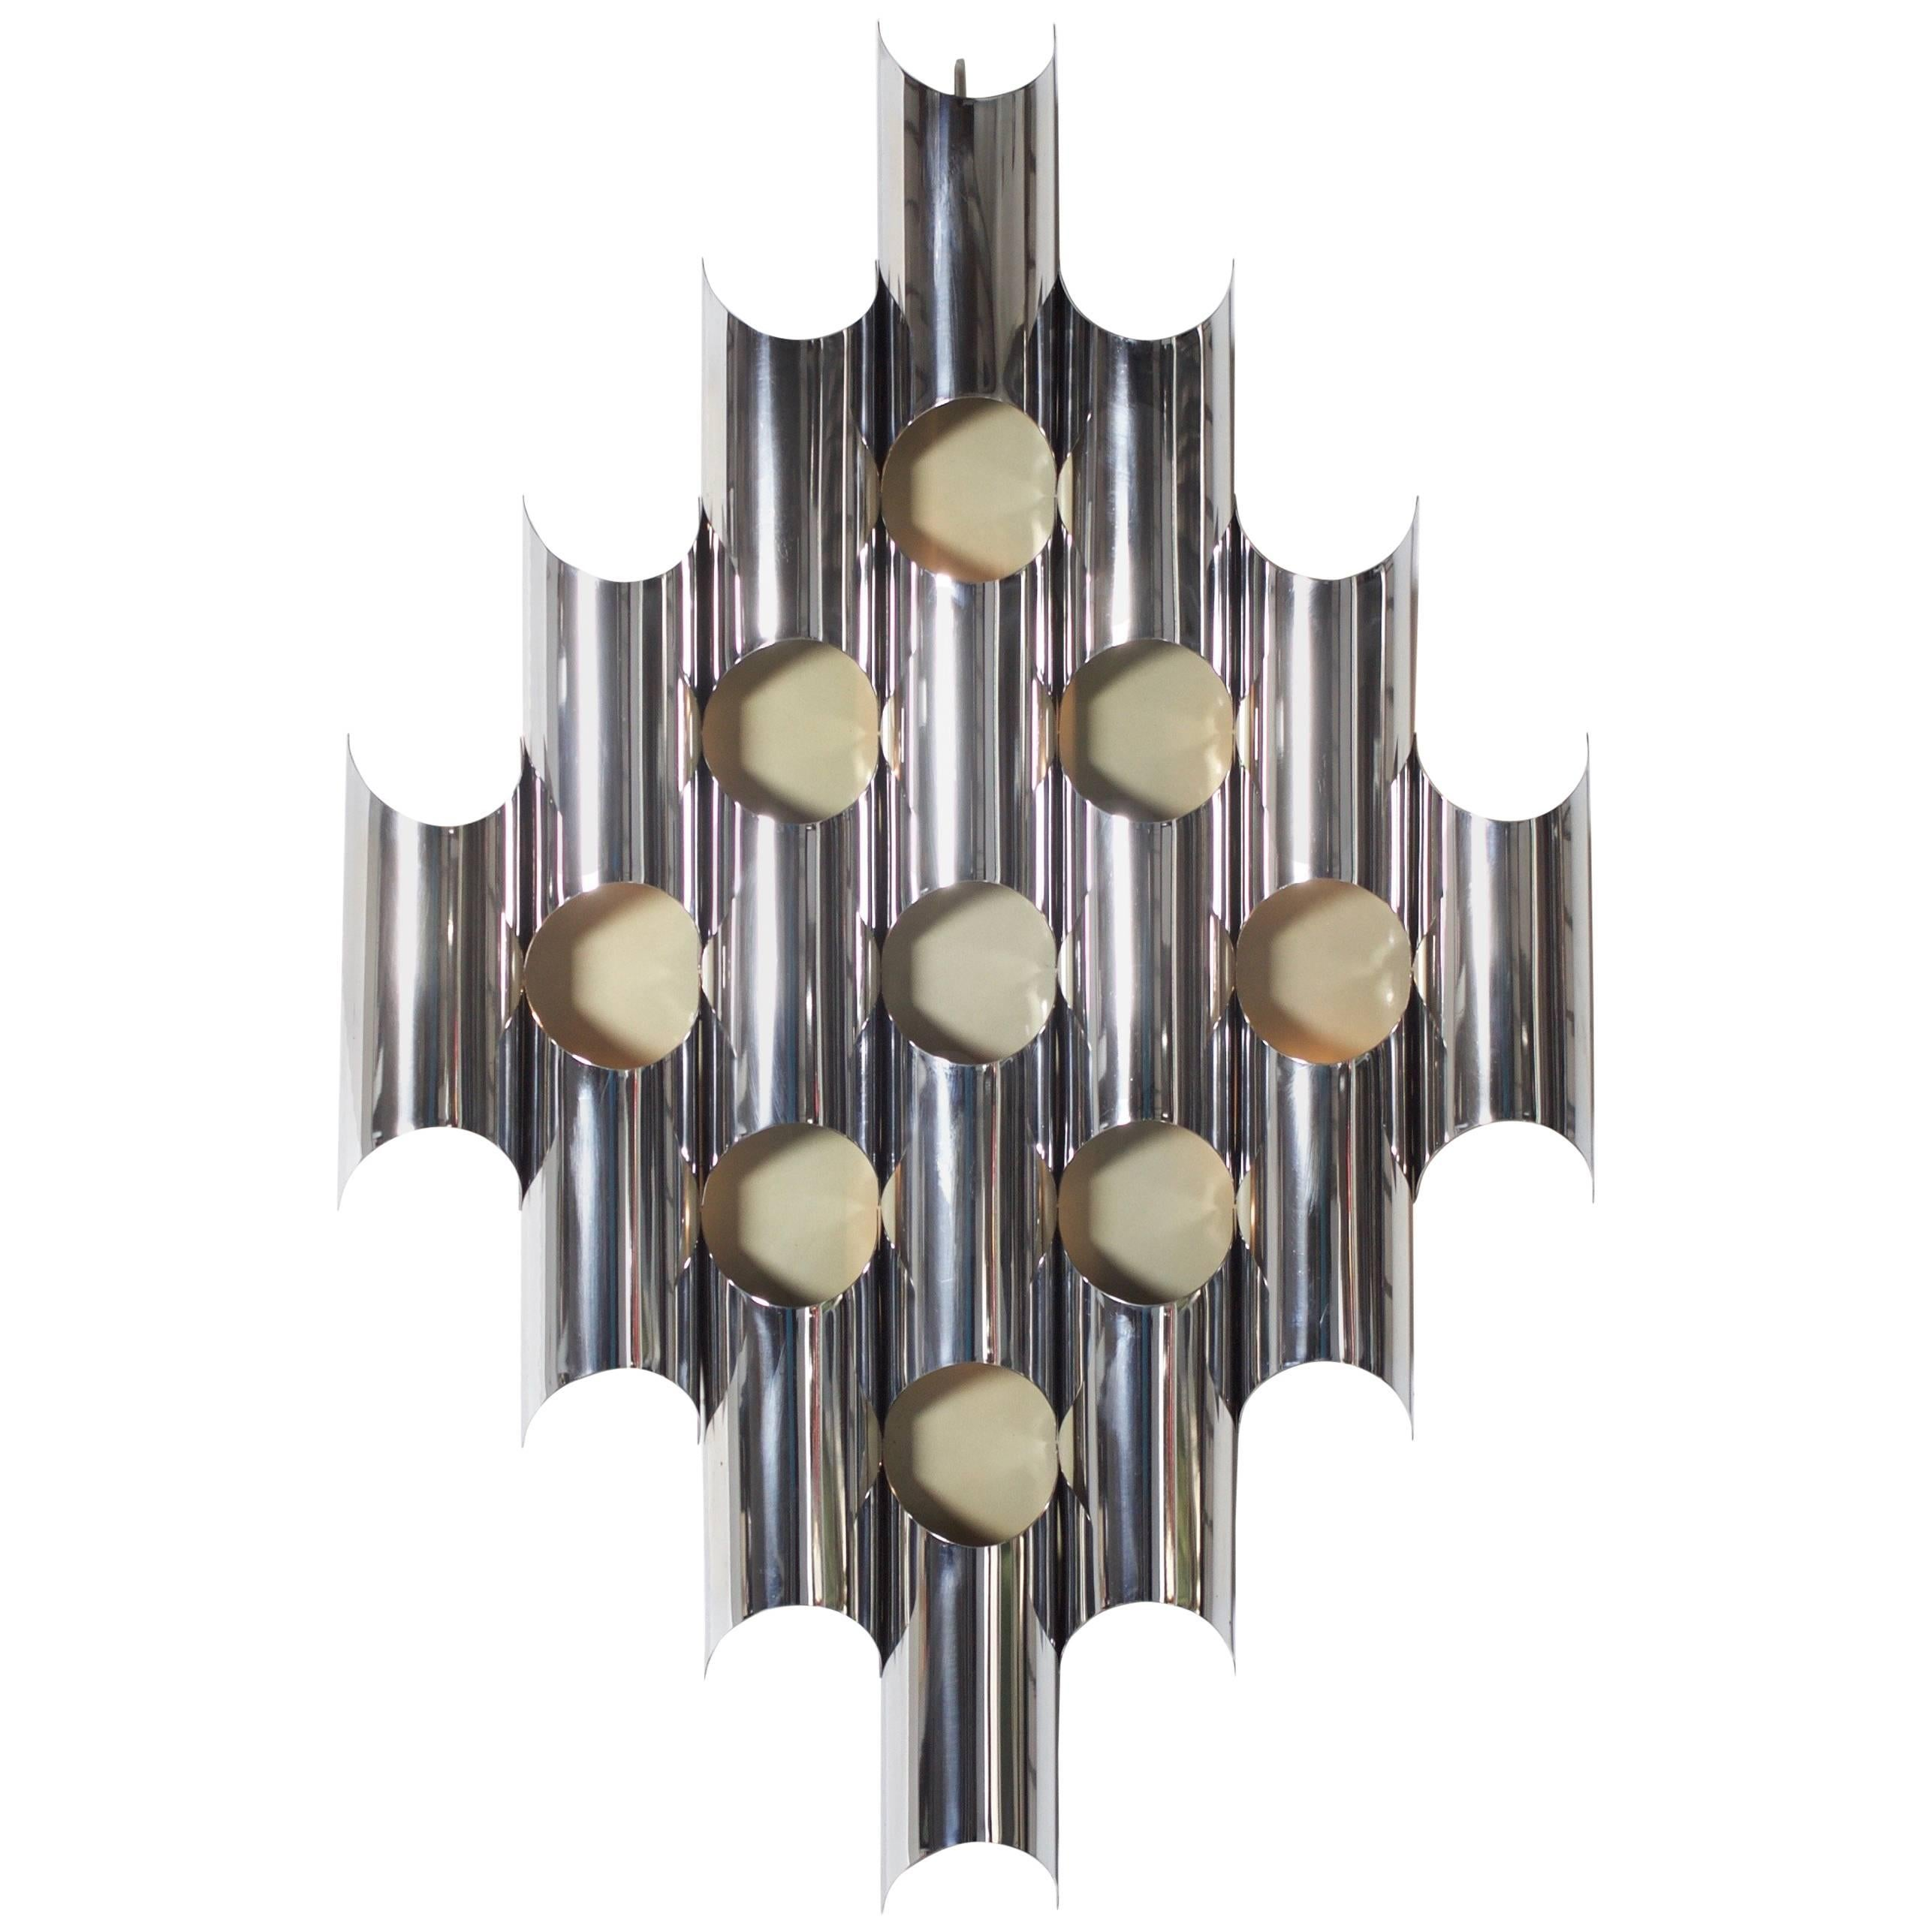 Very Large Sculptural Wall Lamp by Goffredo Reggiani, Italy 1970s